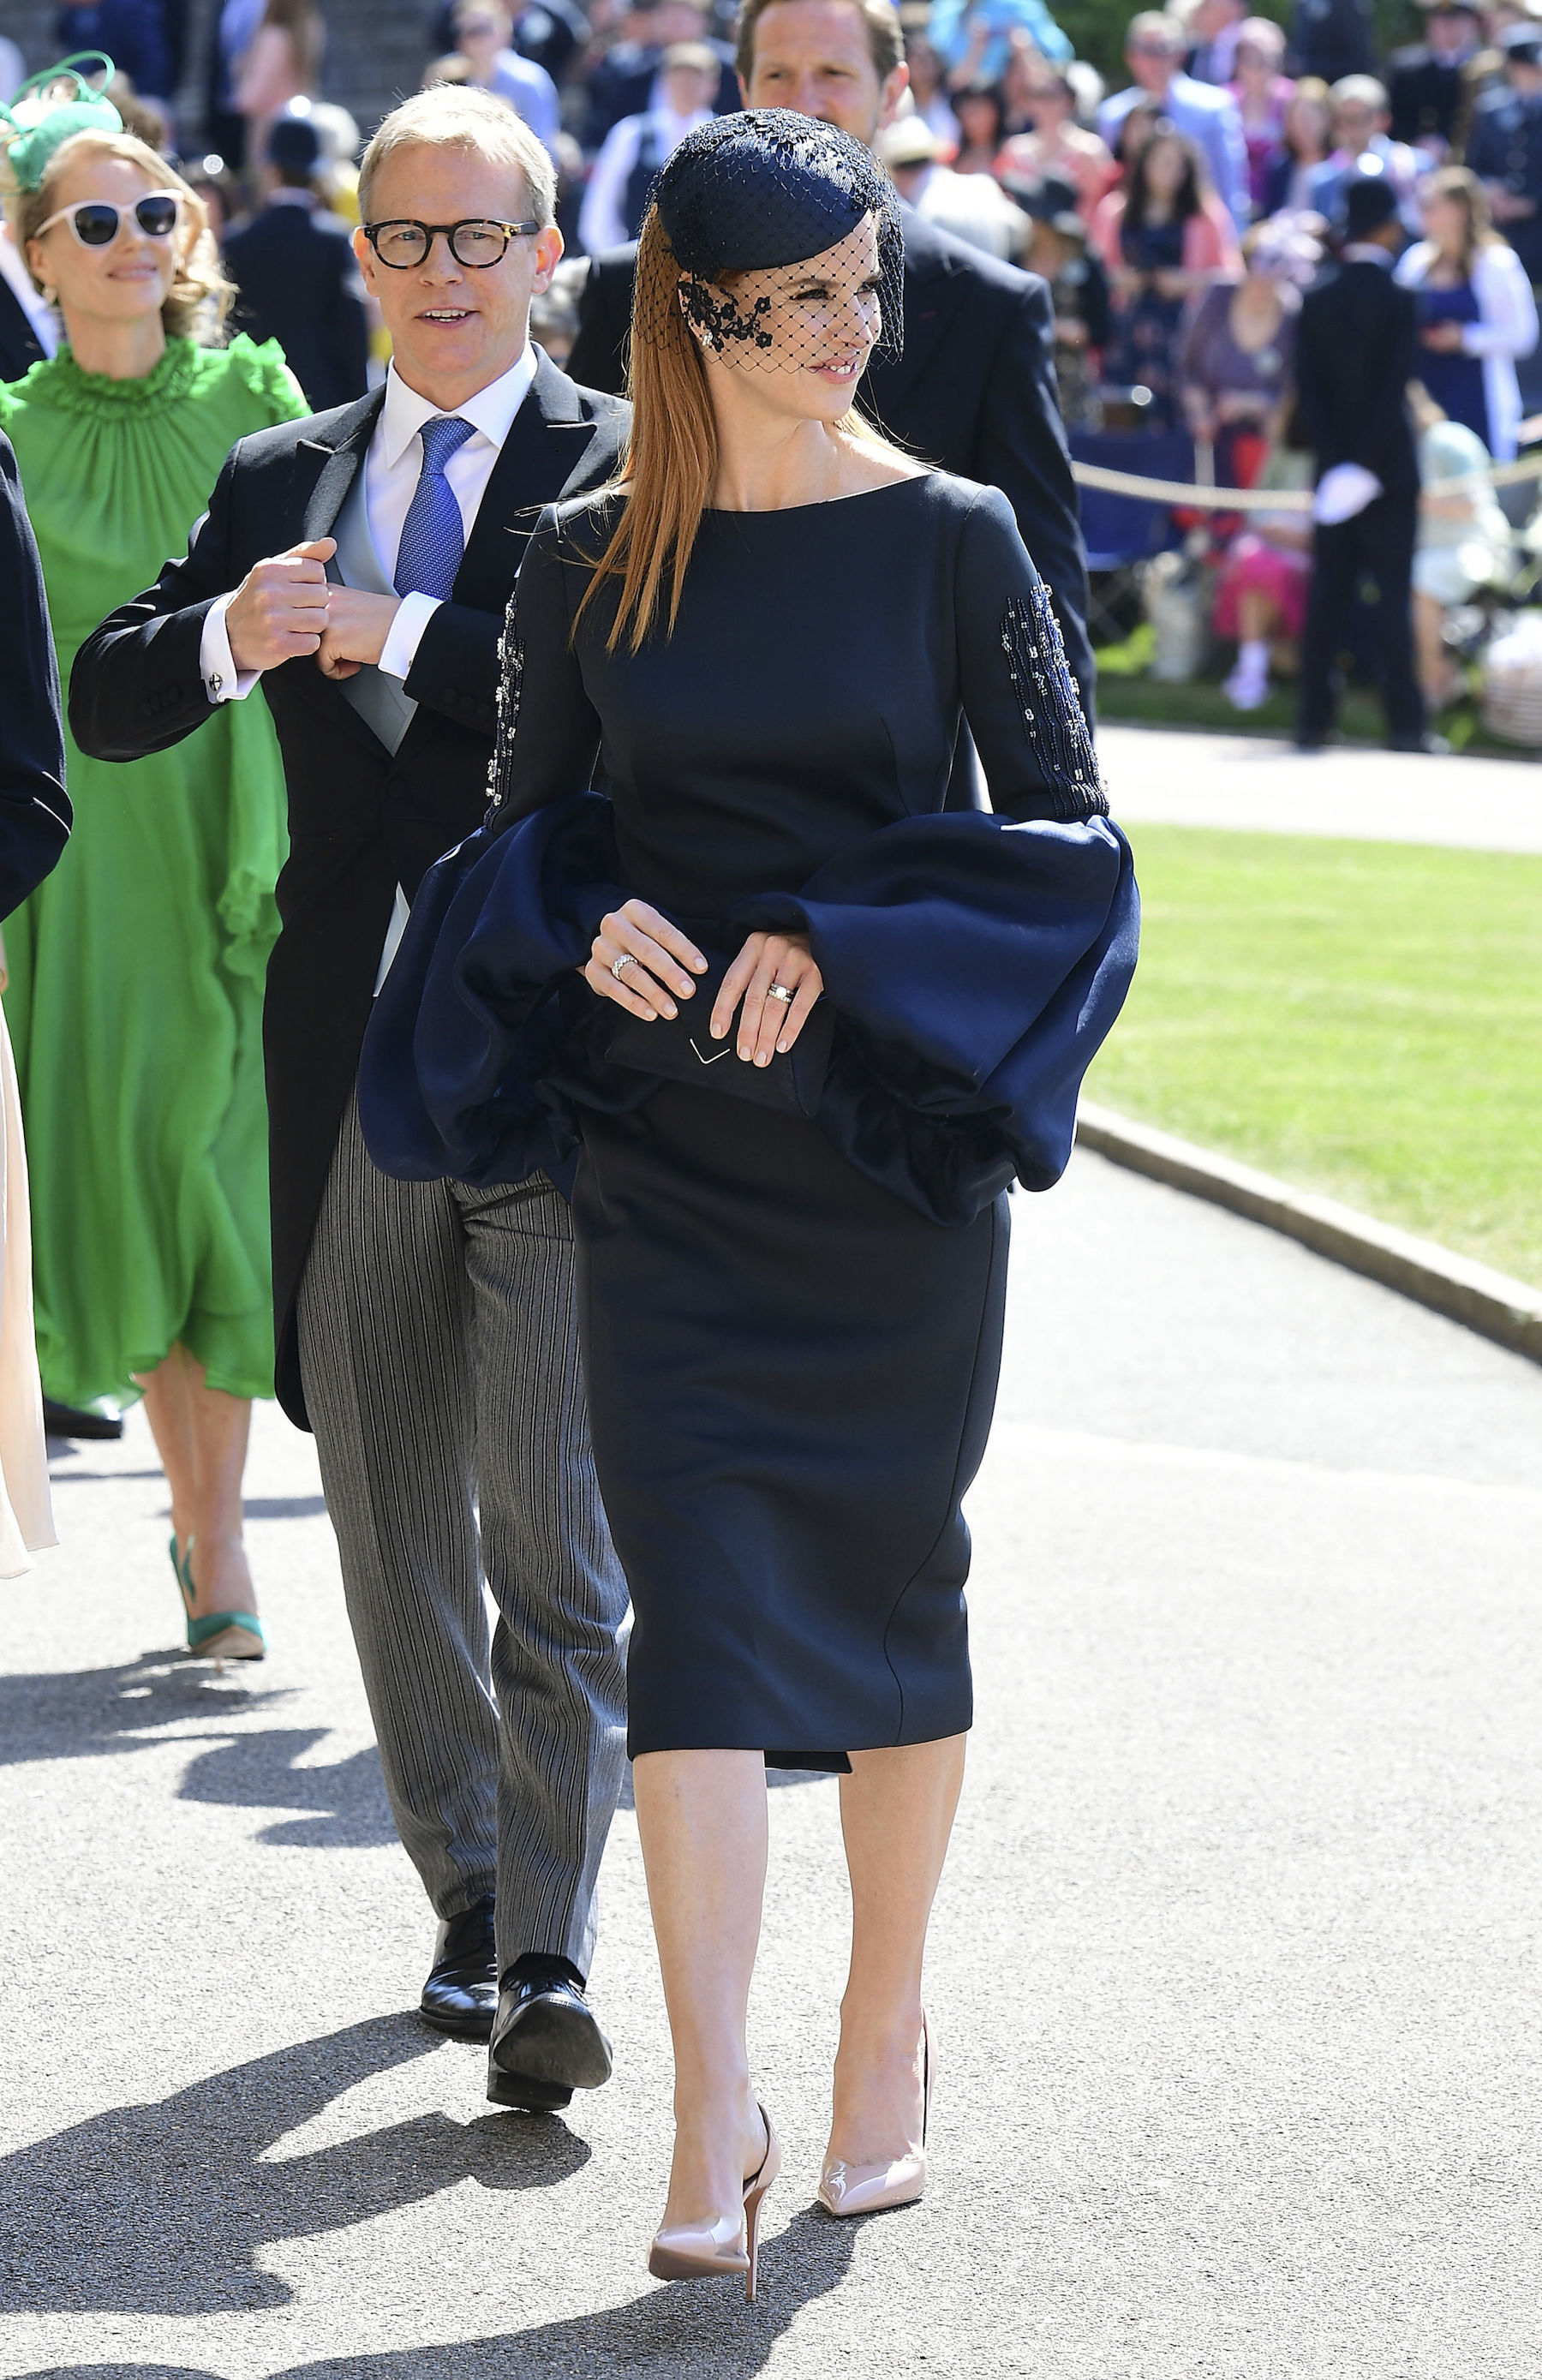 <div class='meta'><div class='origin-logo' data-origin='AP'></div><span class='caption-text' data-credit='Gareth Fuller/PA Wire'>Sarah Rafferty arrives for the wedding ceremony of Prince Harry and Meghan Markle at St. George's Chapel in Windsor Castle in Windsor, near London, England, Saturday, May 19, 2018.</span></div>